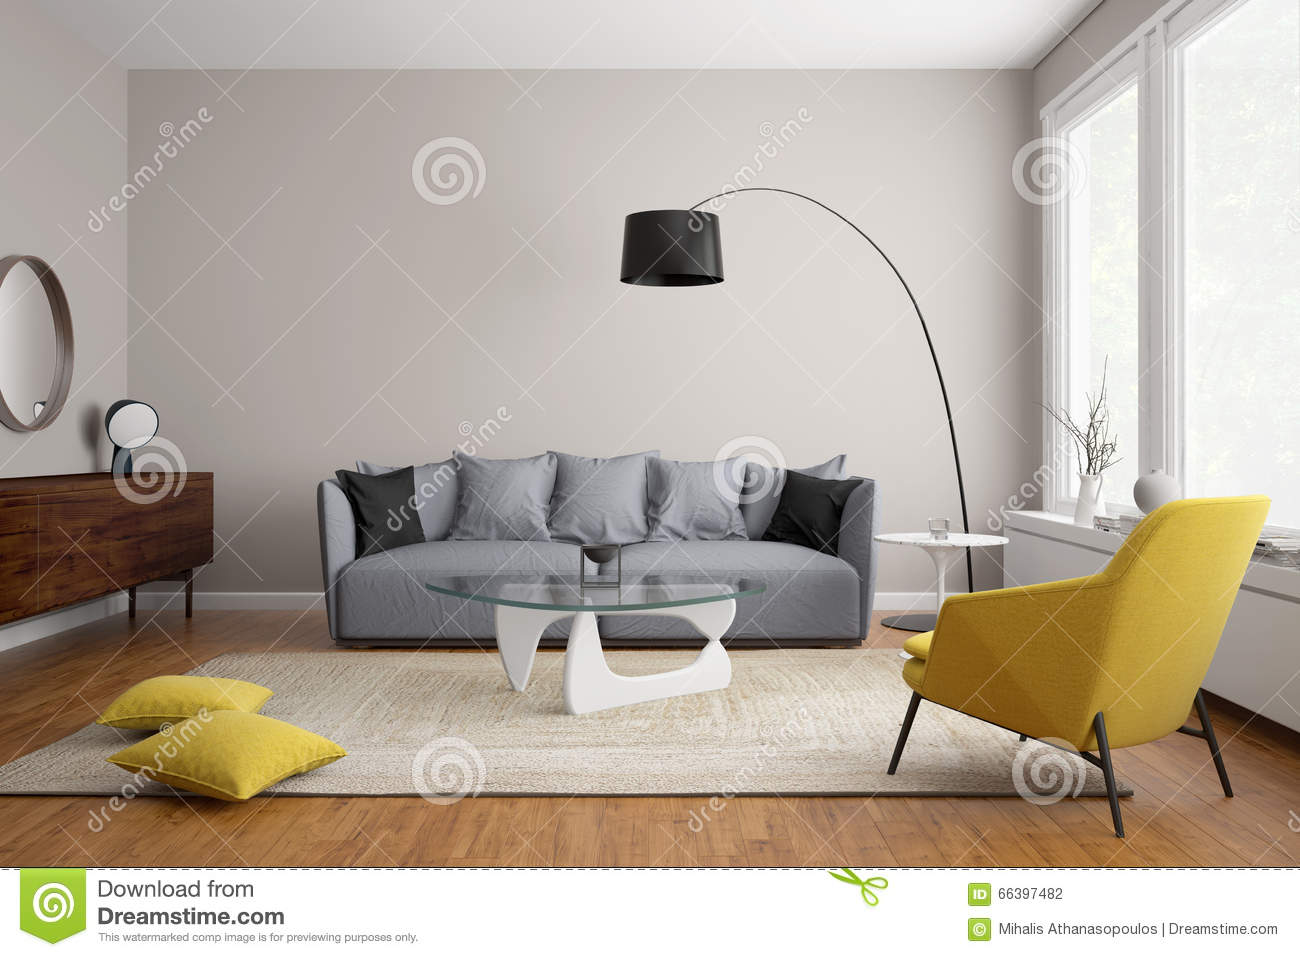 Salon scandinave moderne avec le sofa gris illustration stock image 66397482 for Salon gris scandinave